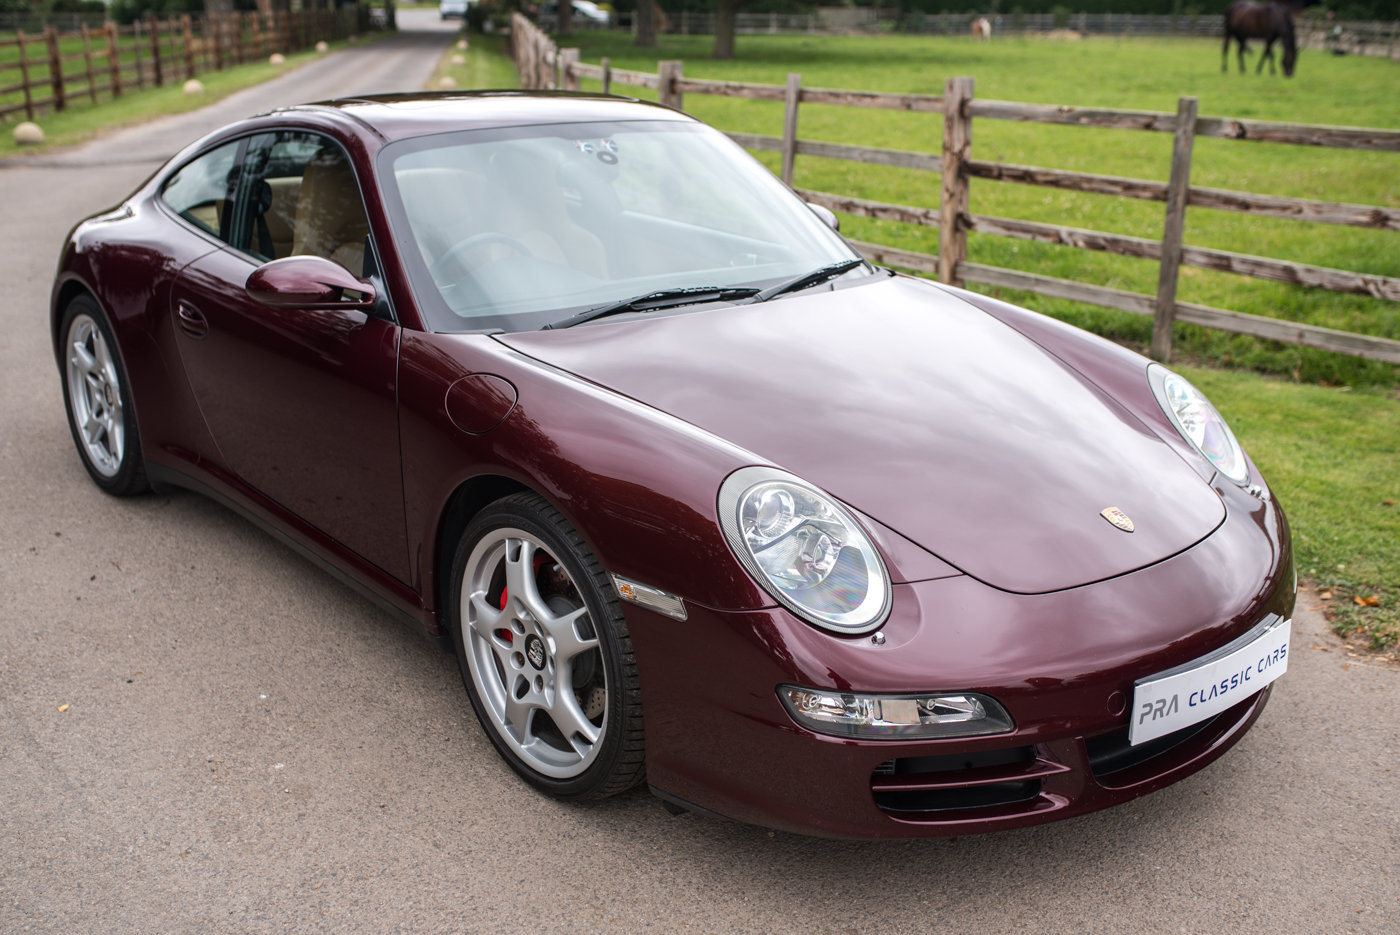 2006 PORSCHE 997 C4S 6 SPEED MANUAL SOLD (picture 1 of 6)